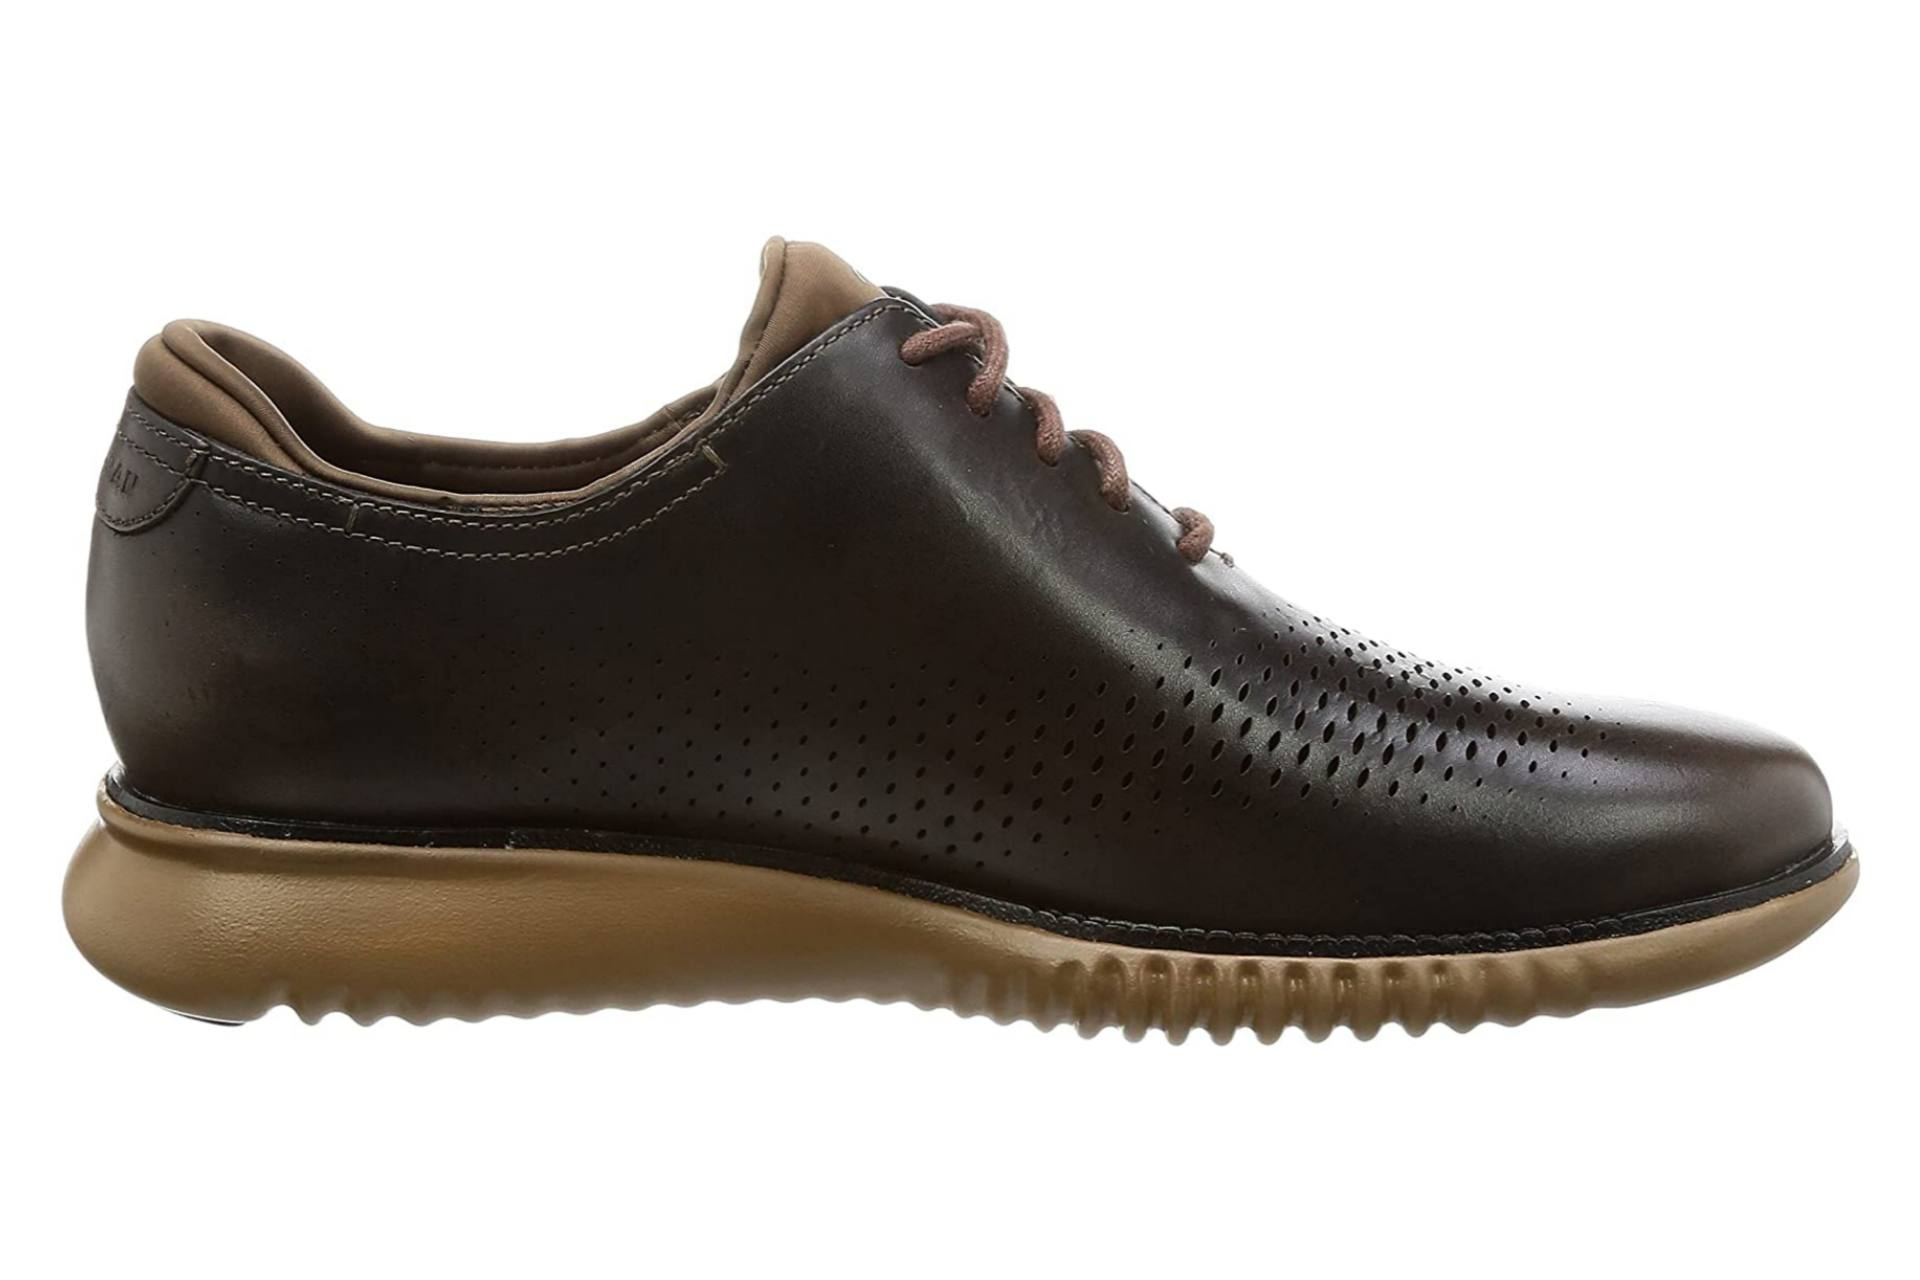 Best casual oxford shoes for men